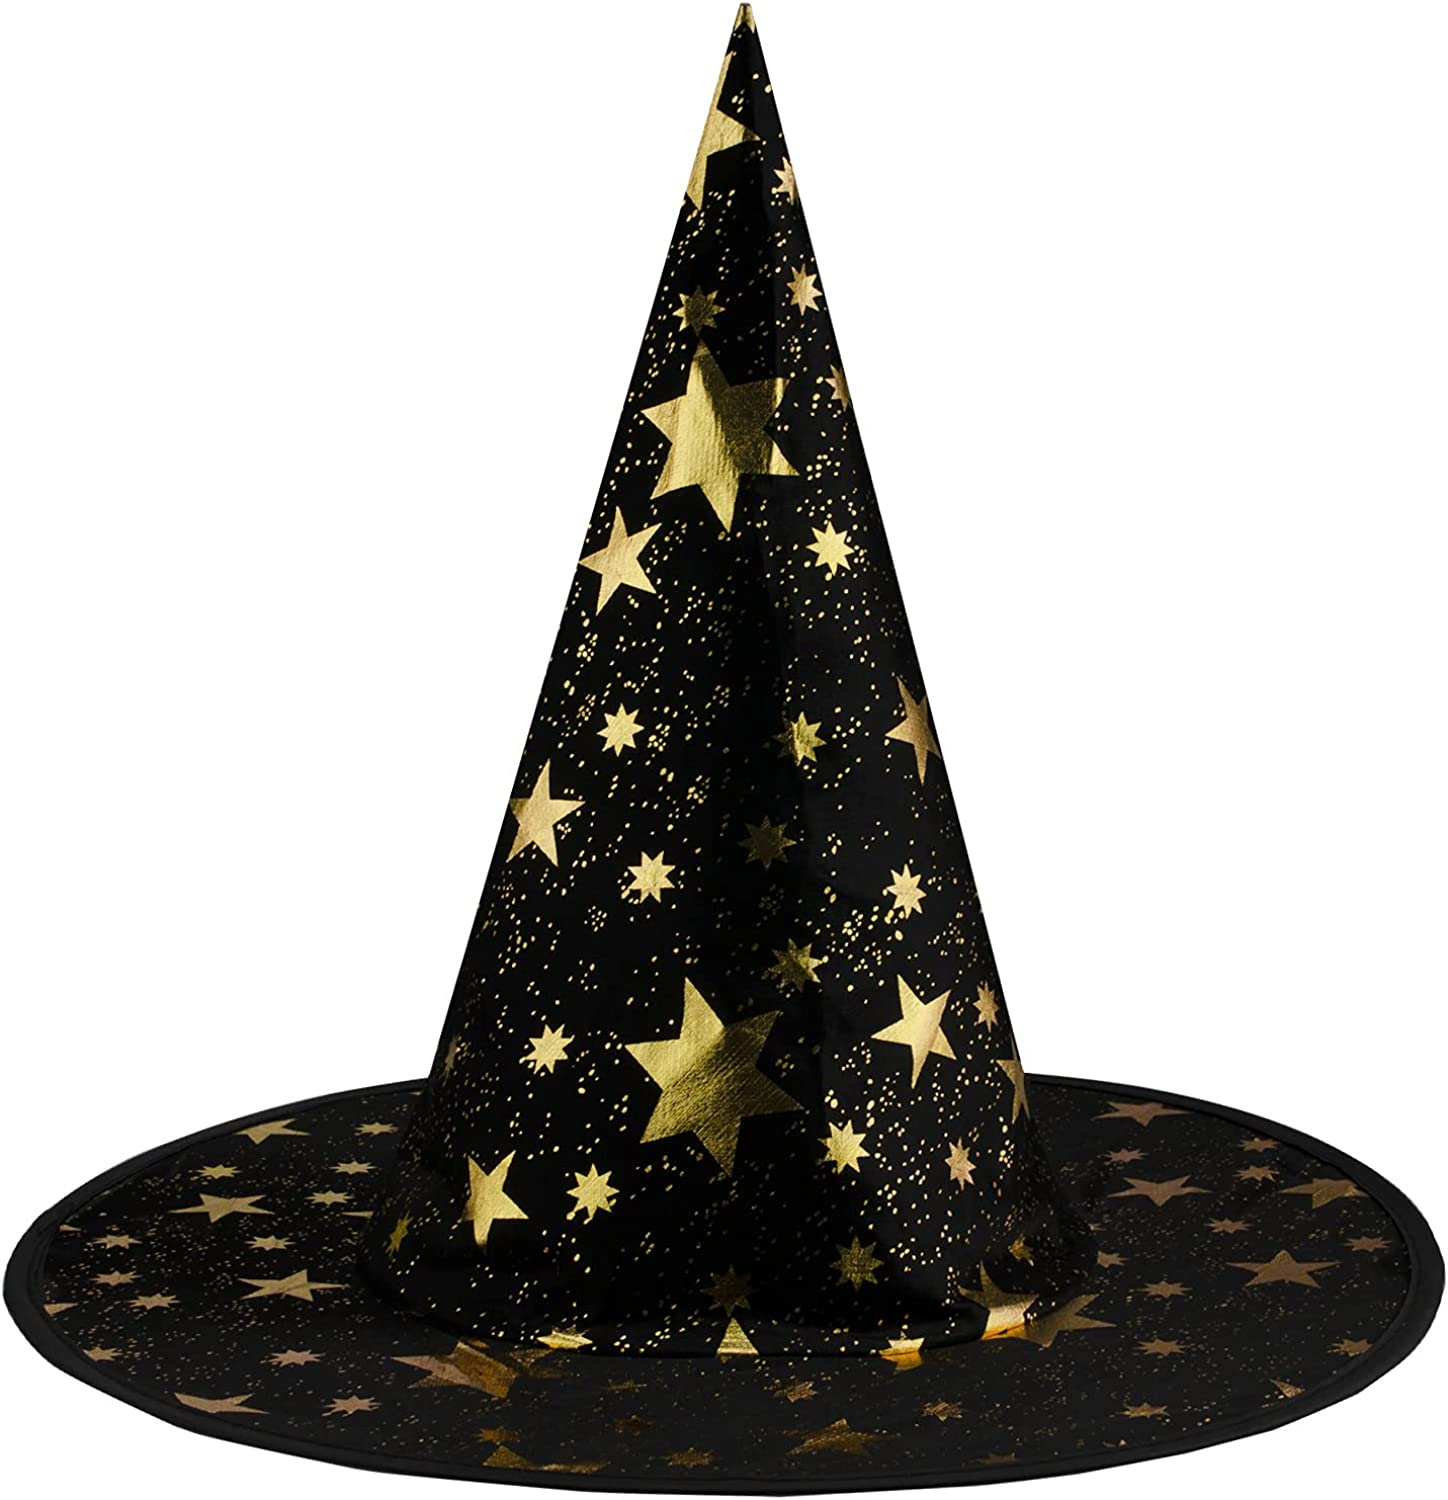 Little World Halloween Witch Hat Selling and selling Popularity f hats Costume party